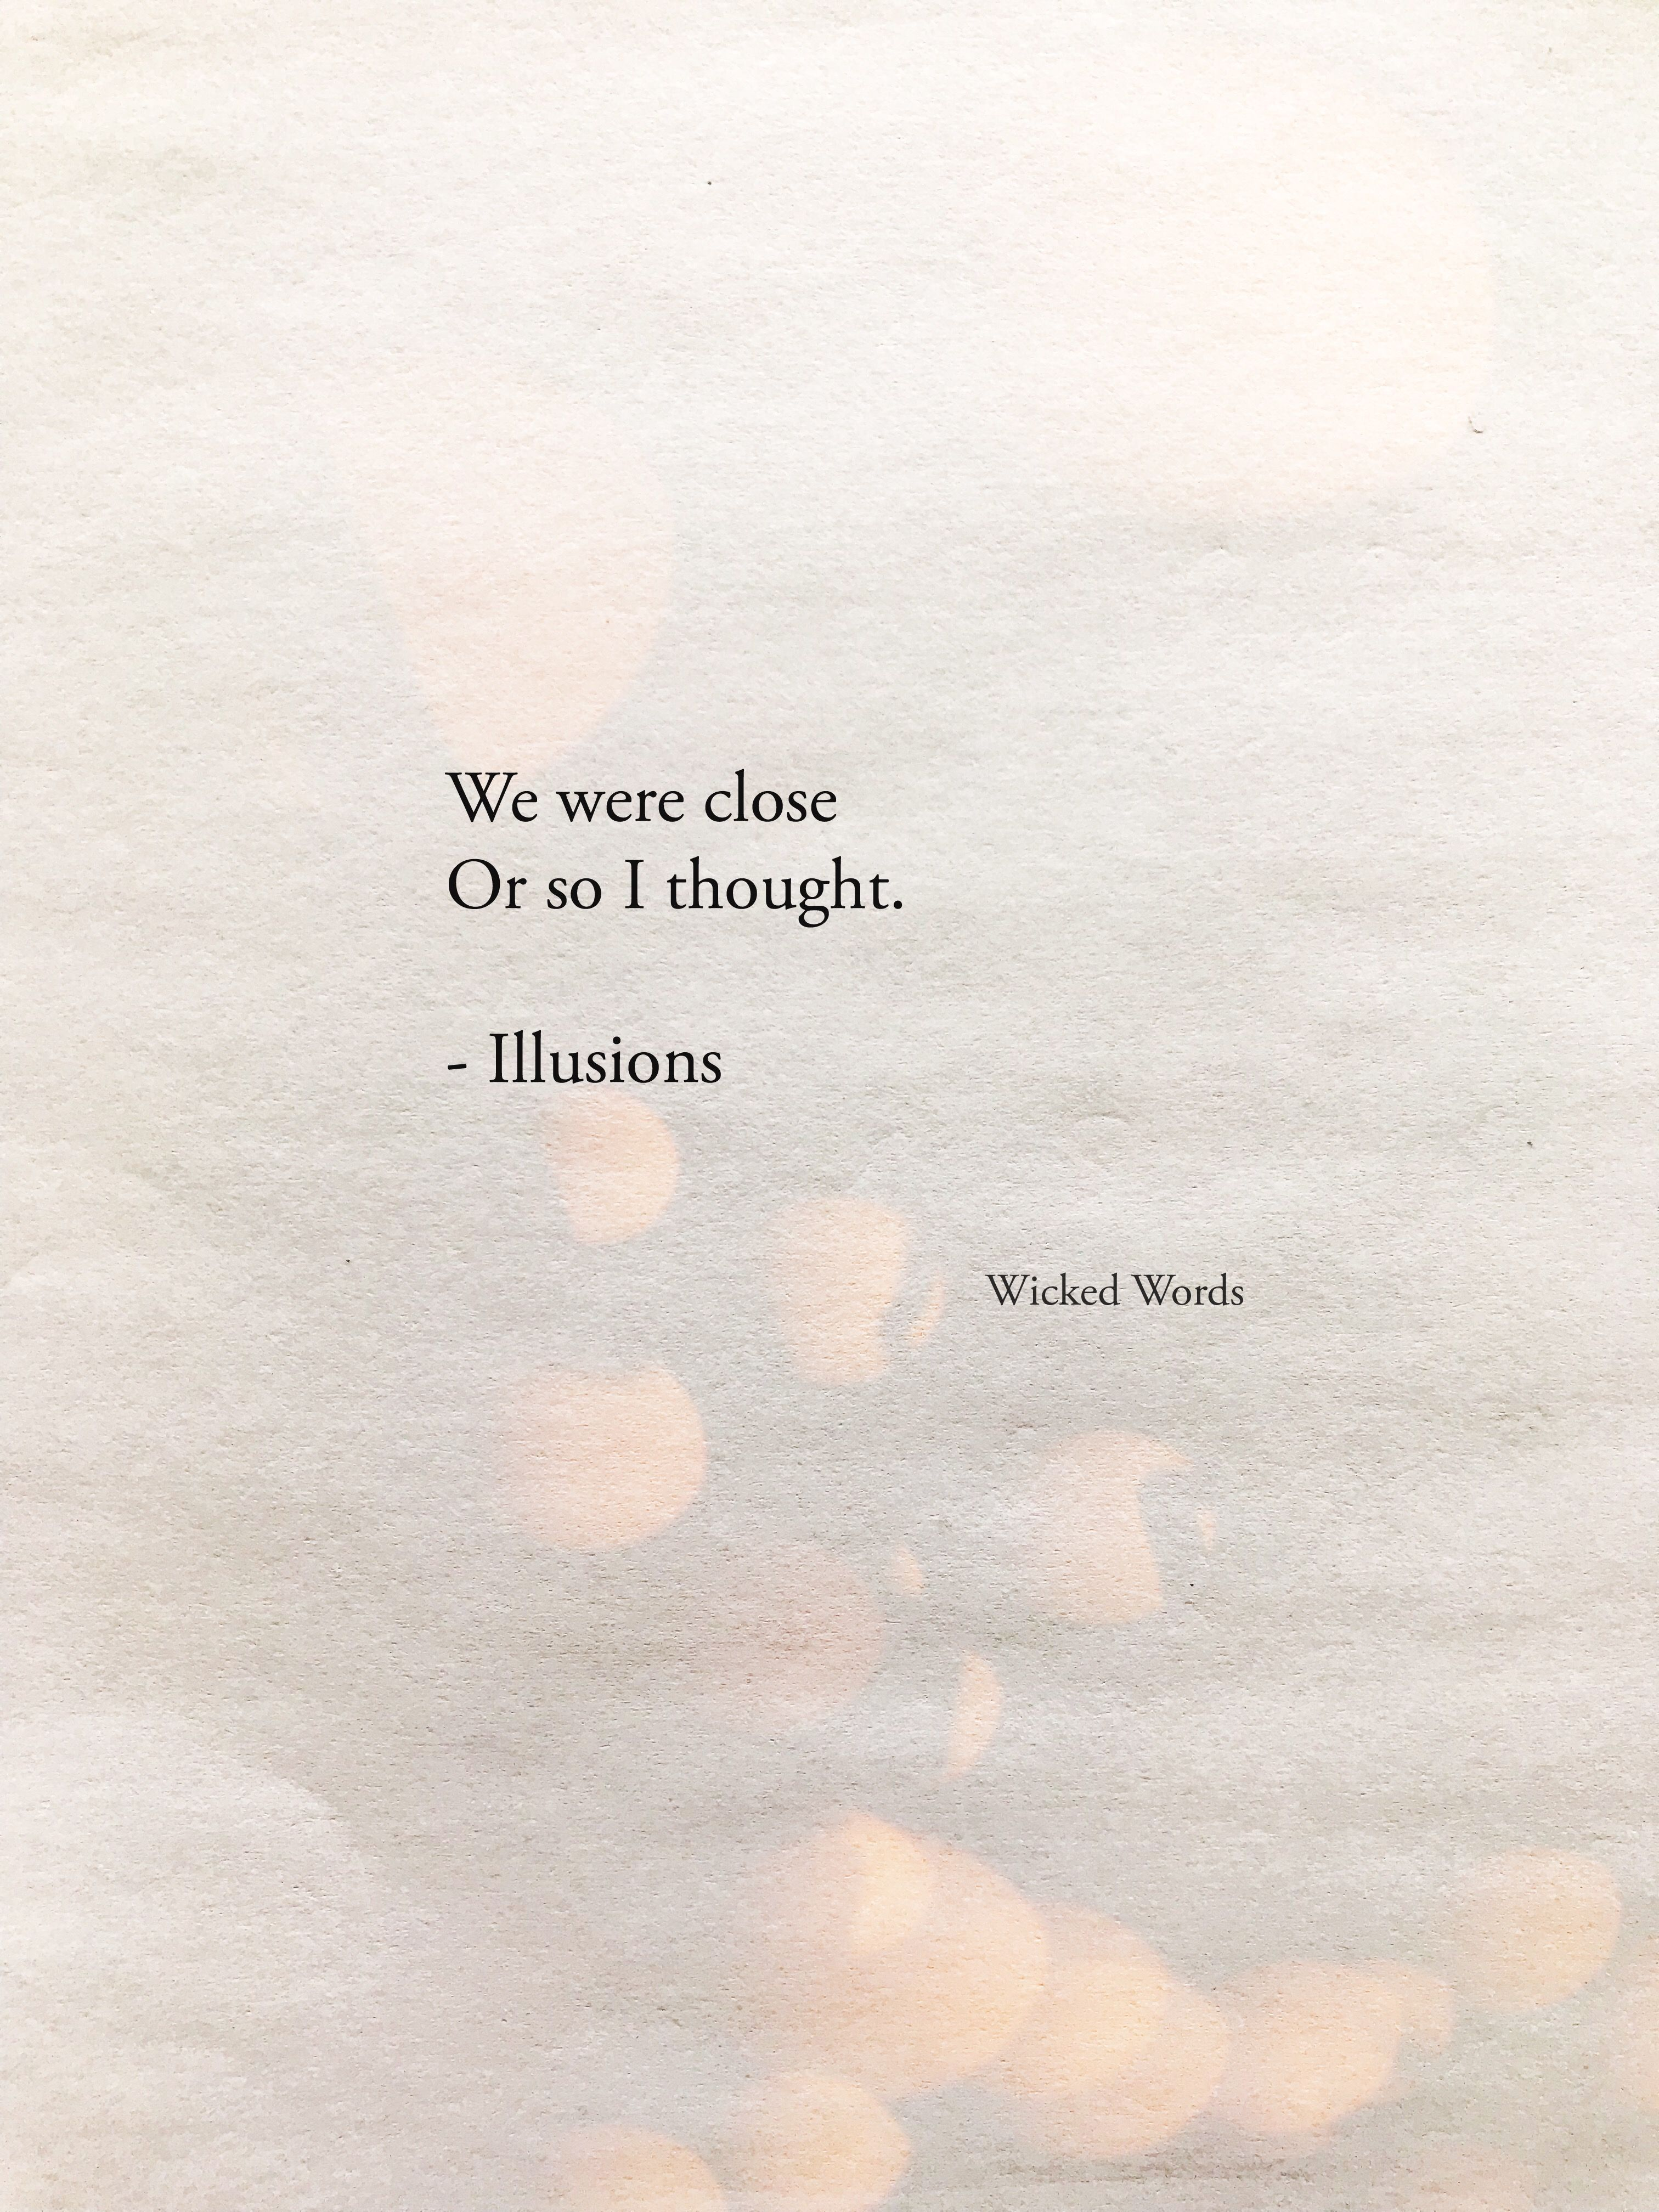 Illusions Quotes And More Illusion Quotes Sorrow Quotes Mood Quotes